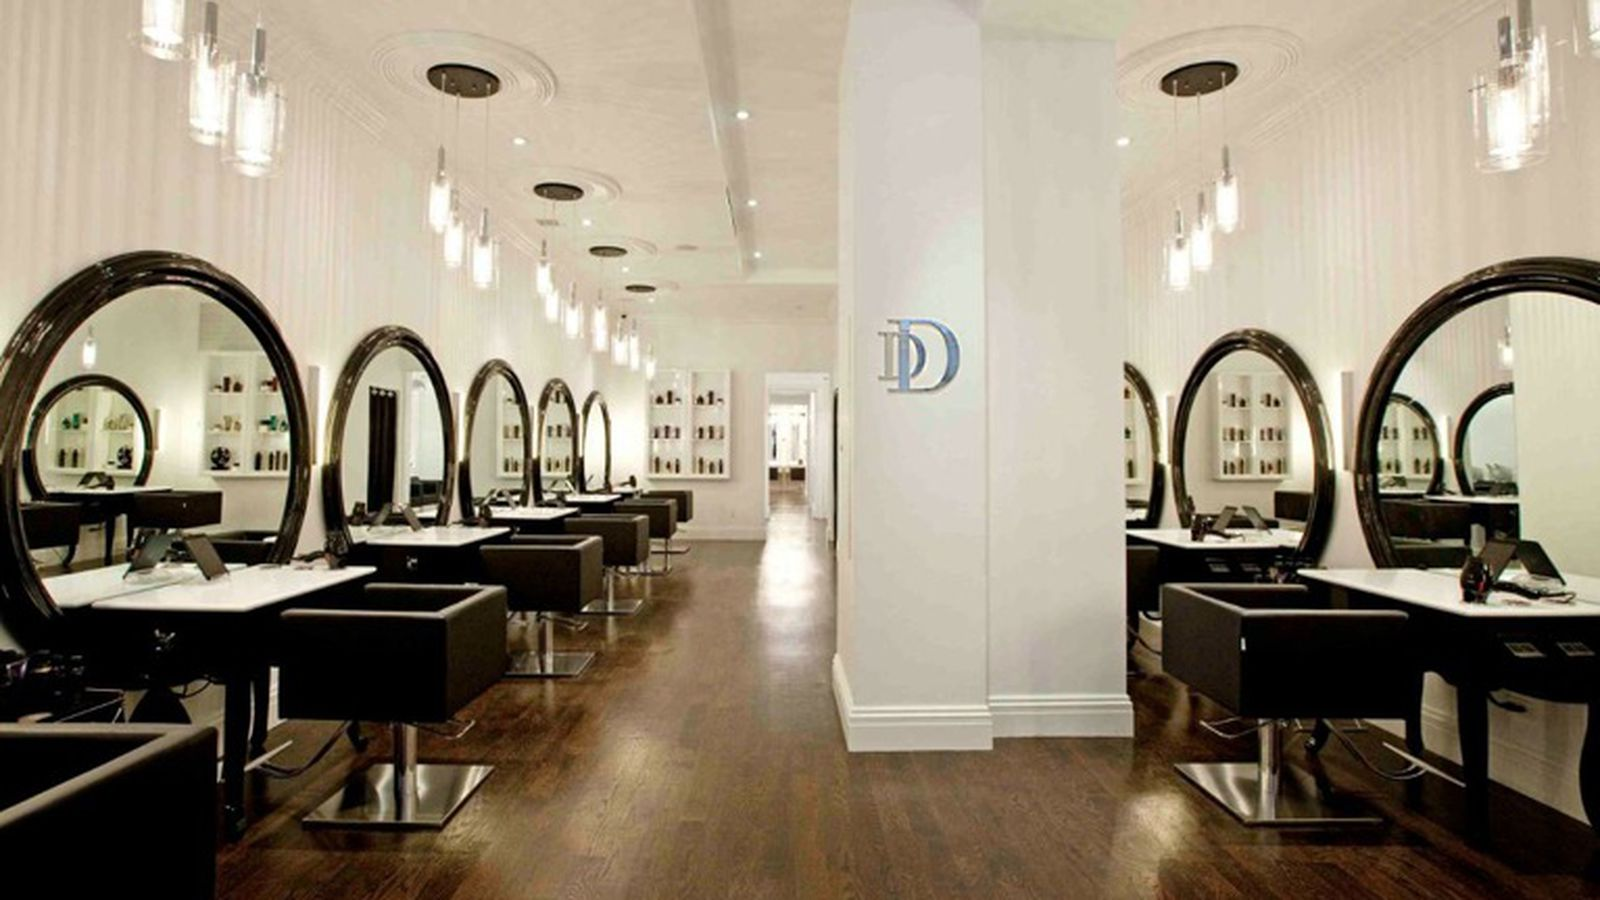 Rachel zoe 39 s second dreamdry salon lands on 57th street for 57th street salon